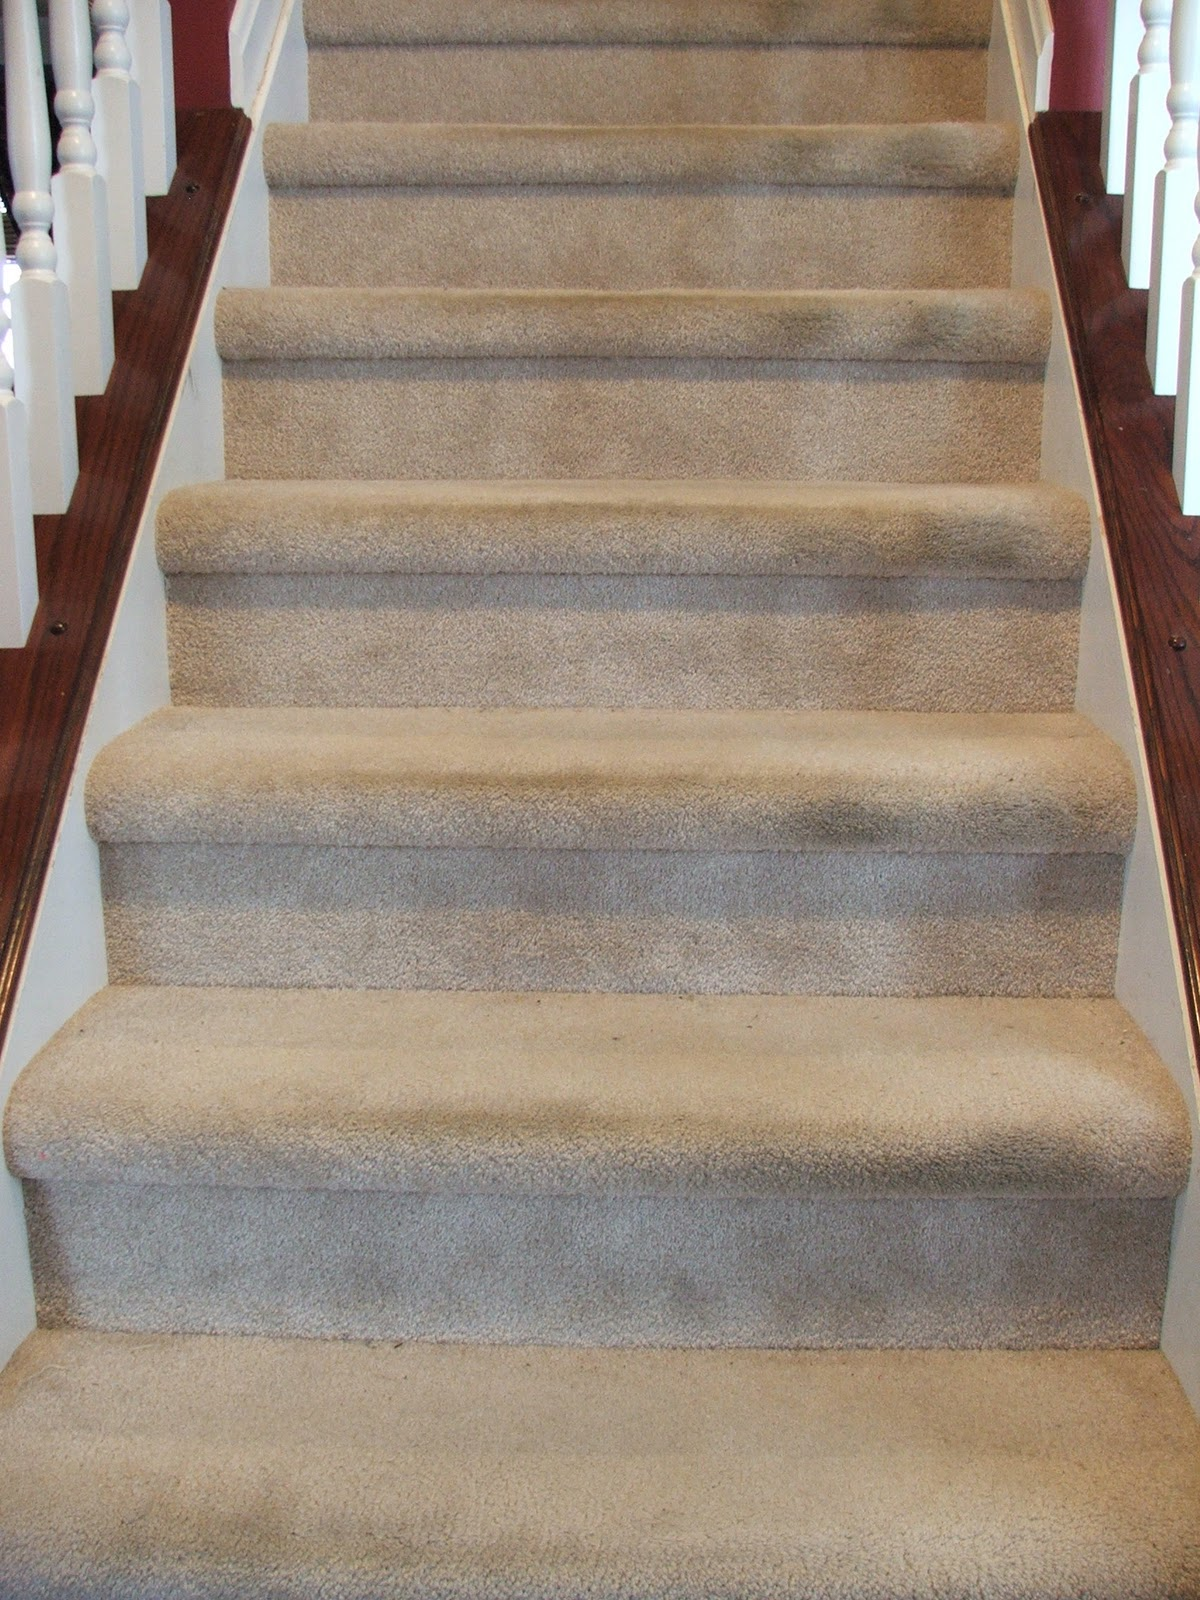 Carpet To Hardwood Stairs The 81 Stair Makeoverrevealed Cleverly Inspired